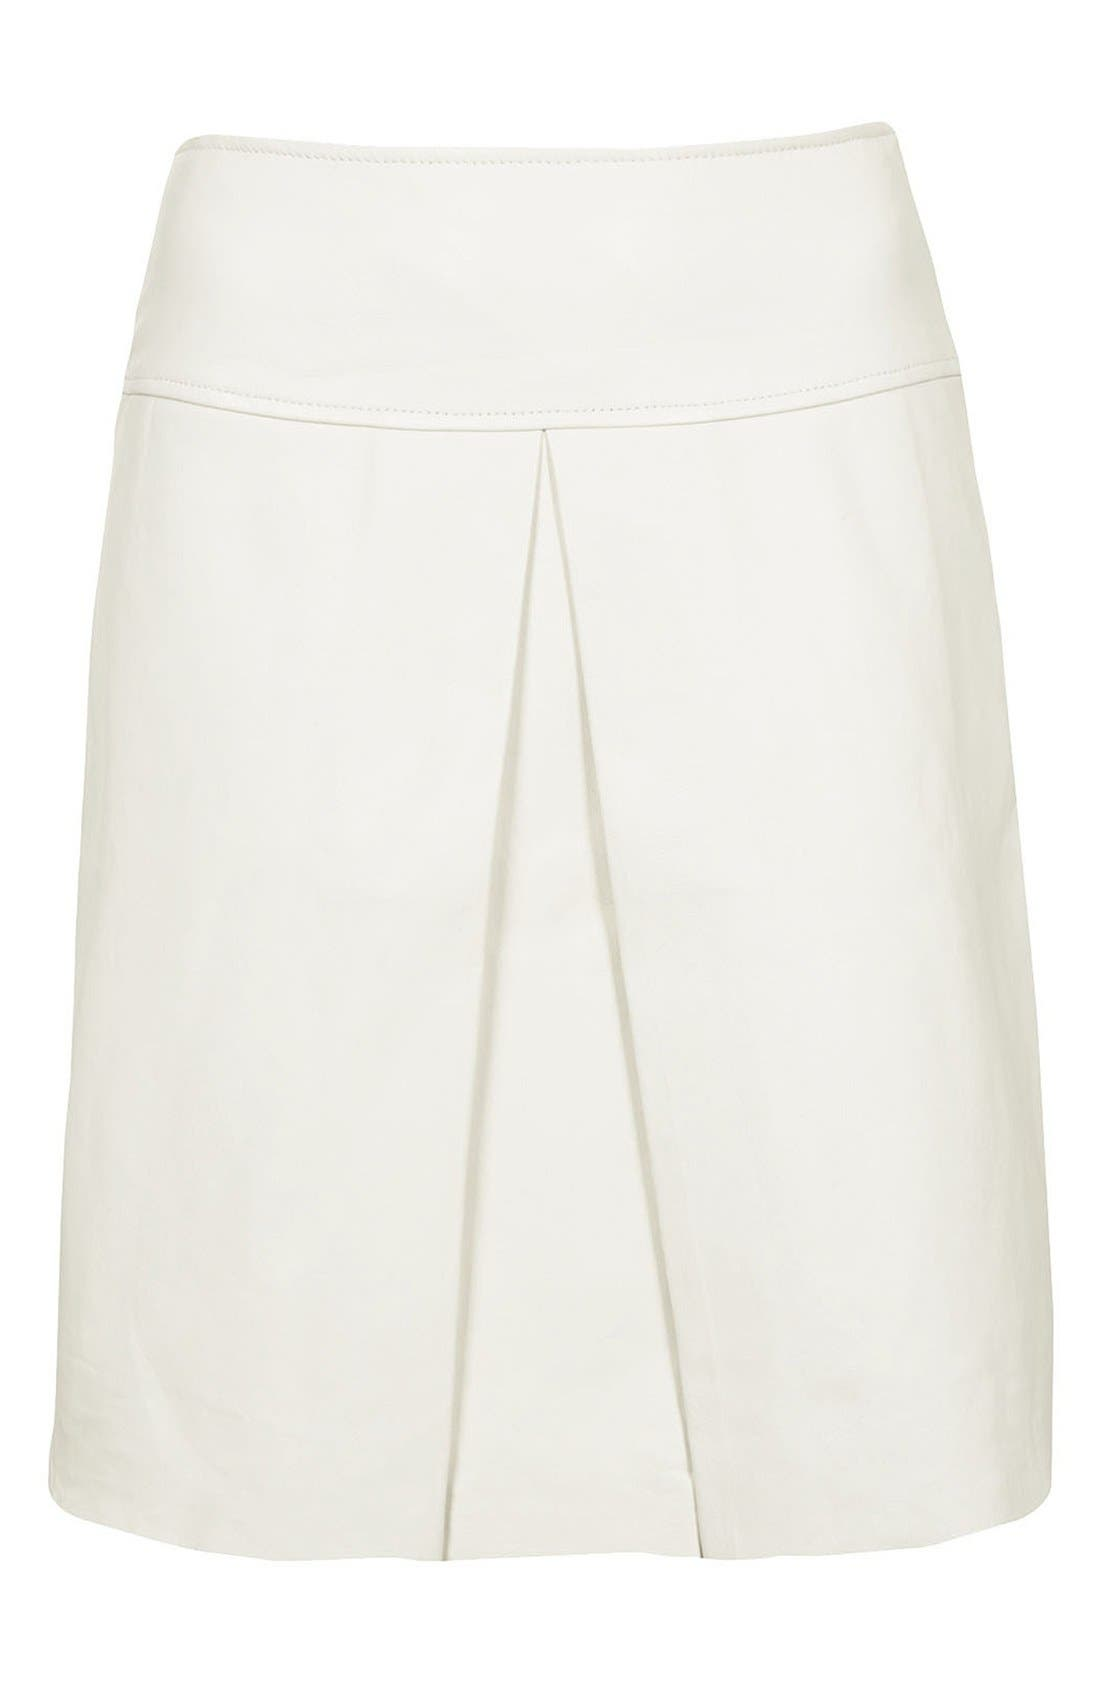 TOPSHOP 'The Collection Starring Kate Bosworth' Leather Skirt, Main, color, 100